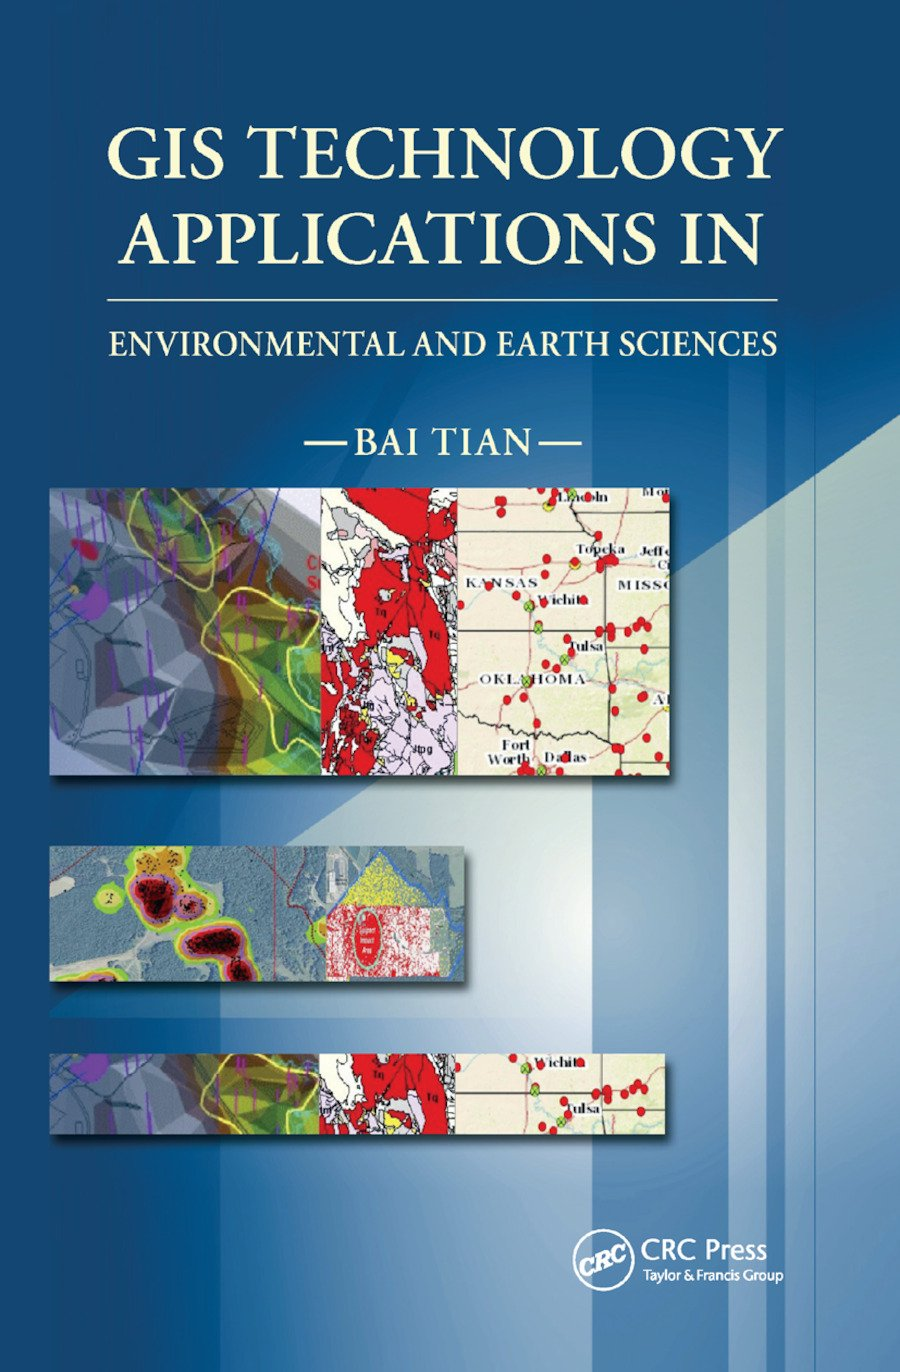 GIS Technology Applications in Environmental and Earth Sciences book cover